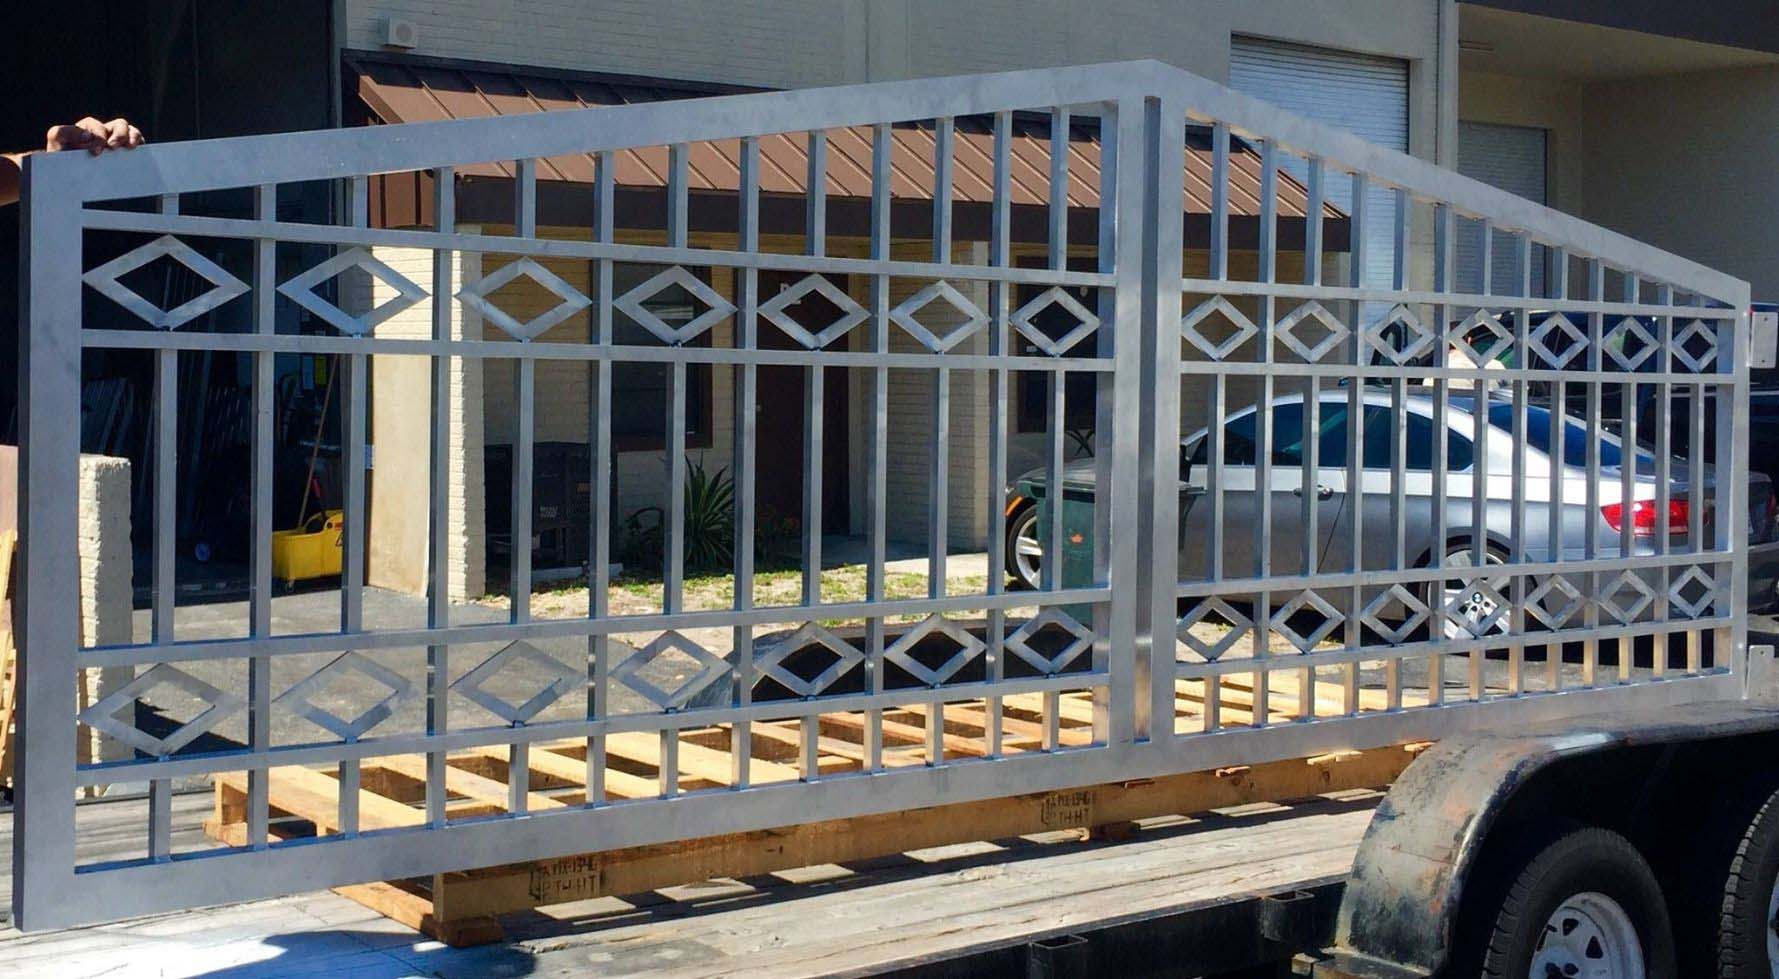 In order for you to get a great custom automatic gate installation in Fort Worth, you have to make sure you call on the right expert team to get it done the right way. Otherwise, you might not be as satisfied as with our higher quliaty gate installations in Fort Worth Texas. Get the best for your home or business today by giving us a call and requesting your free fence installation quote.